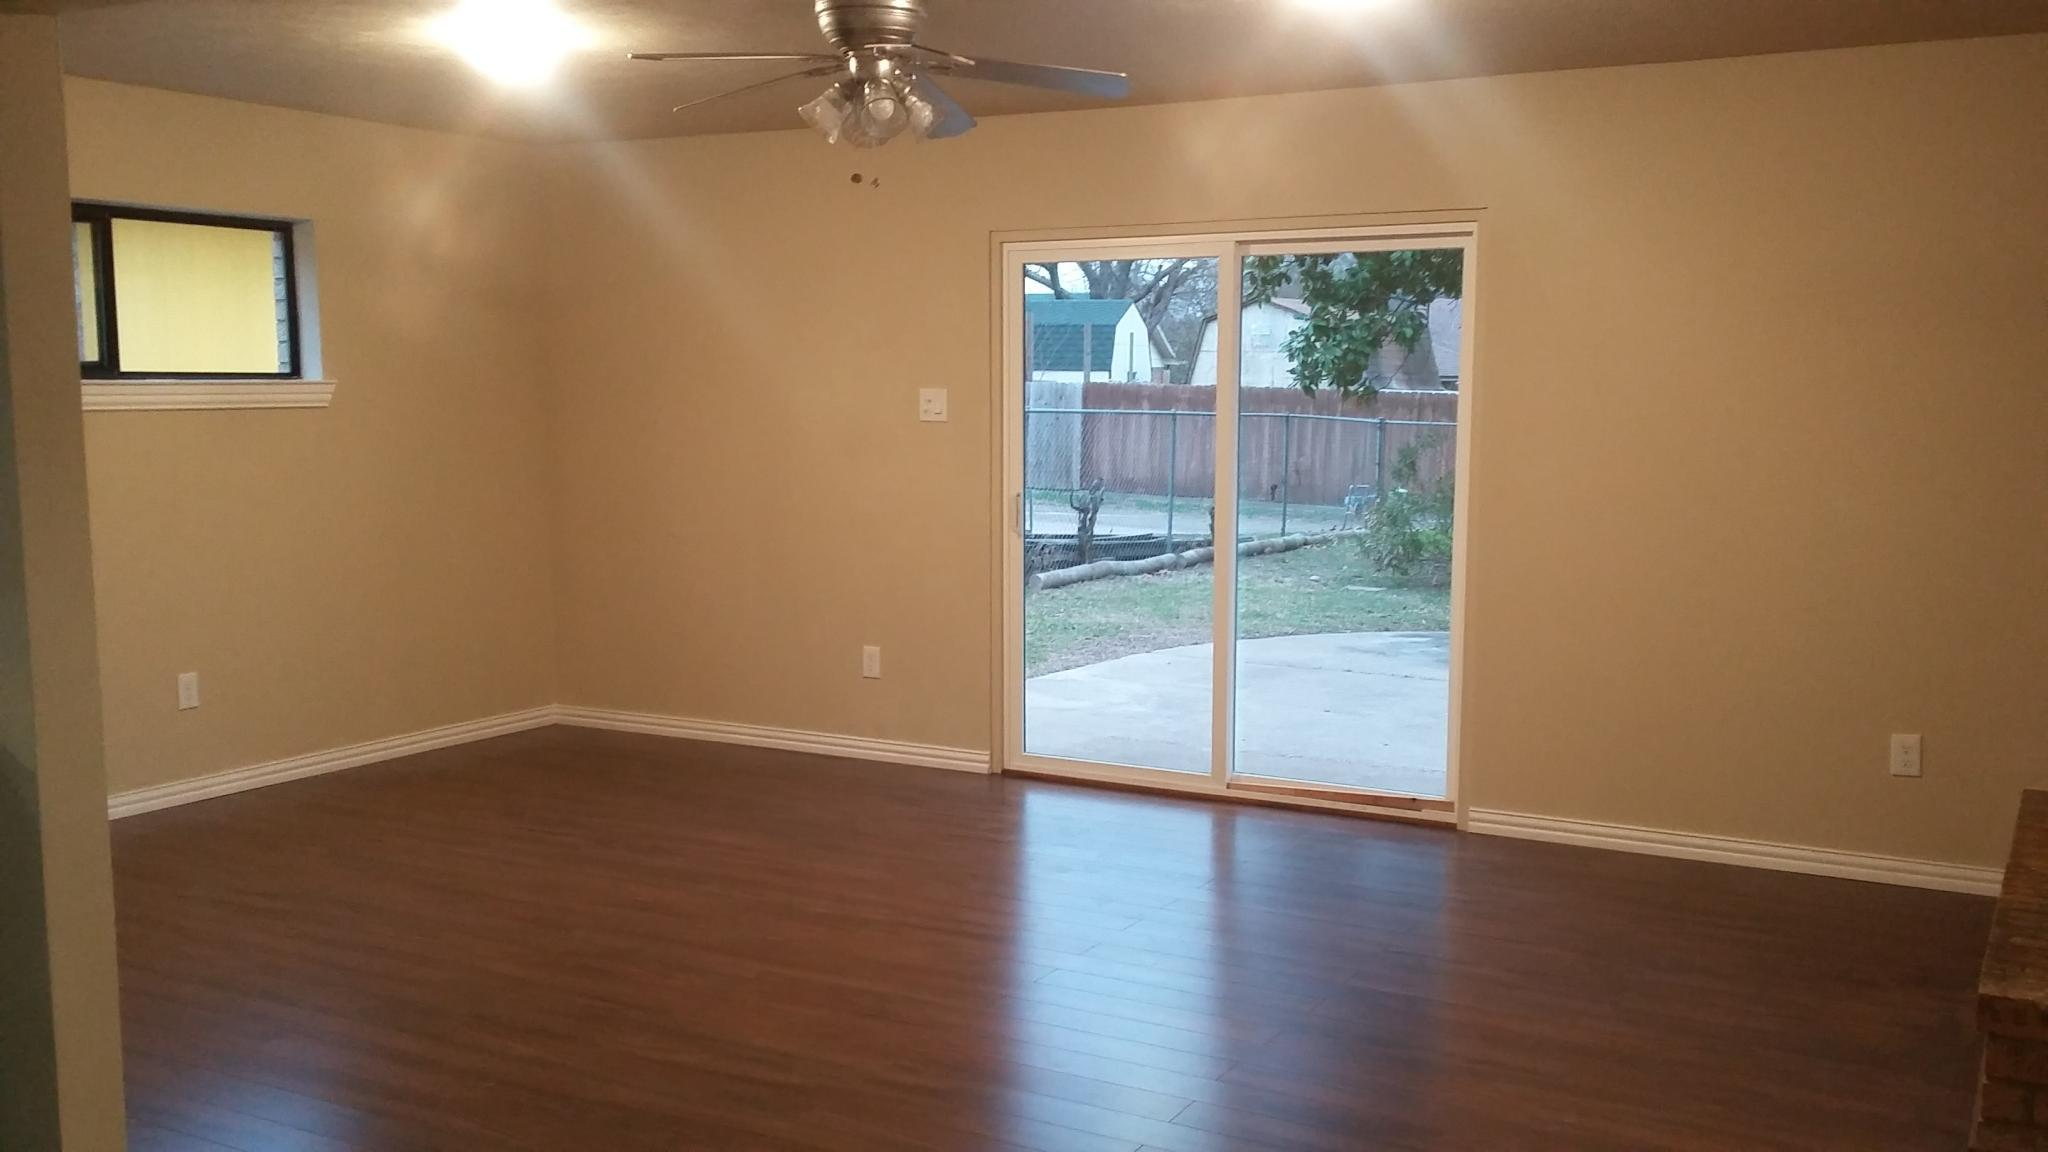 Cheap Apartments In Duncanville Tx. Image Of Extra Space Storage ...